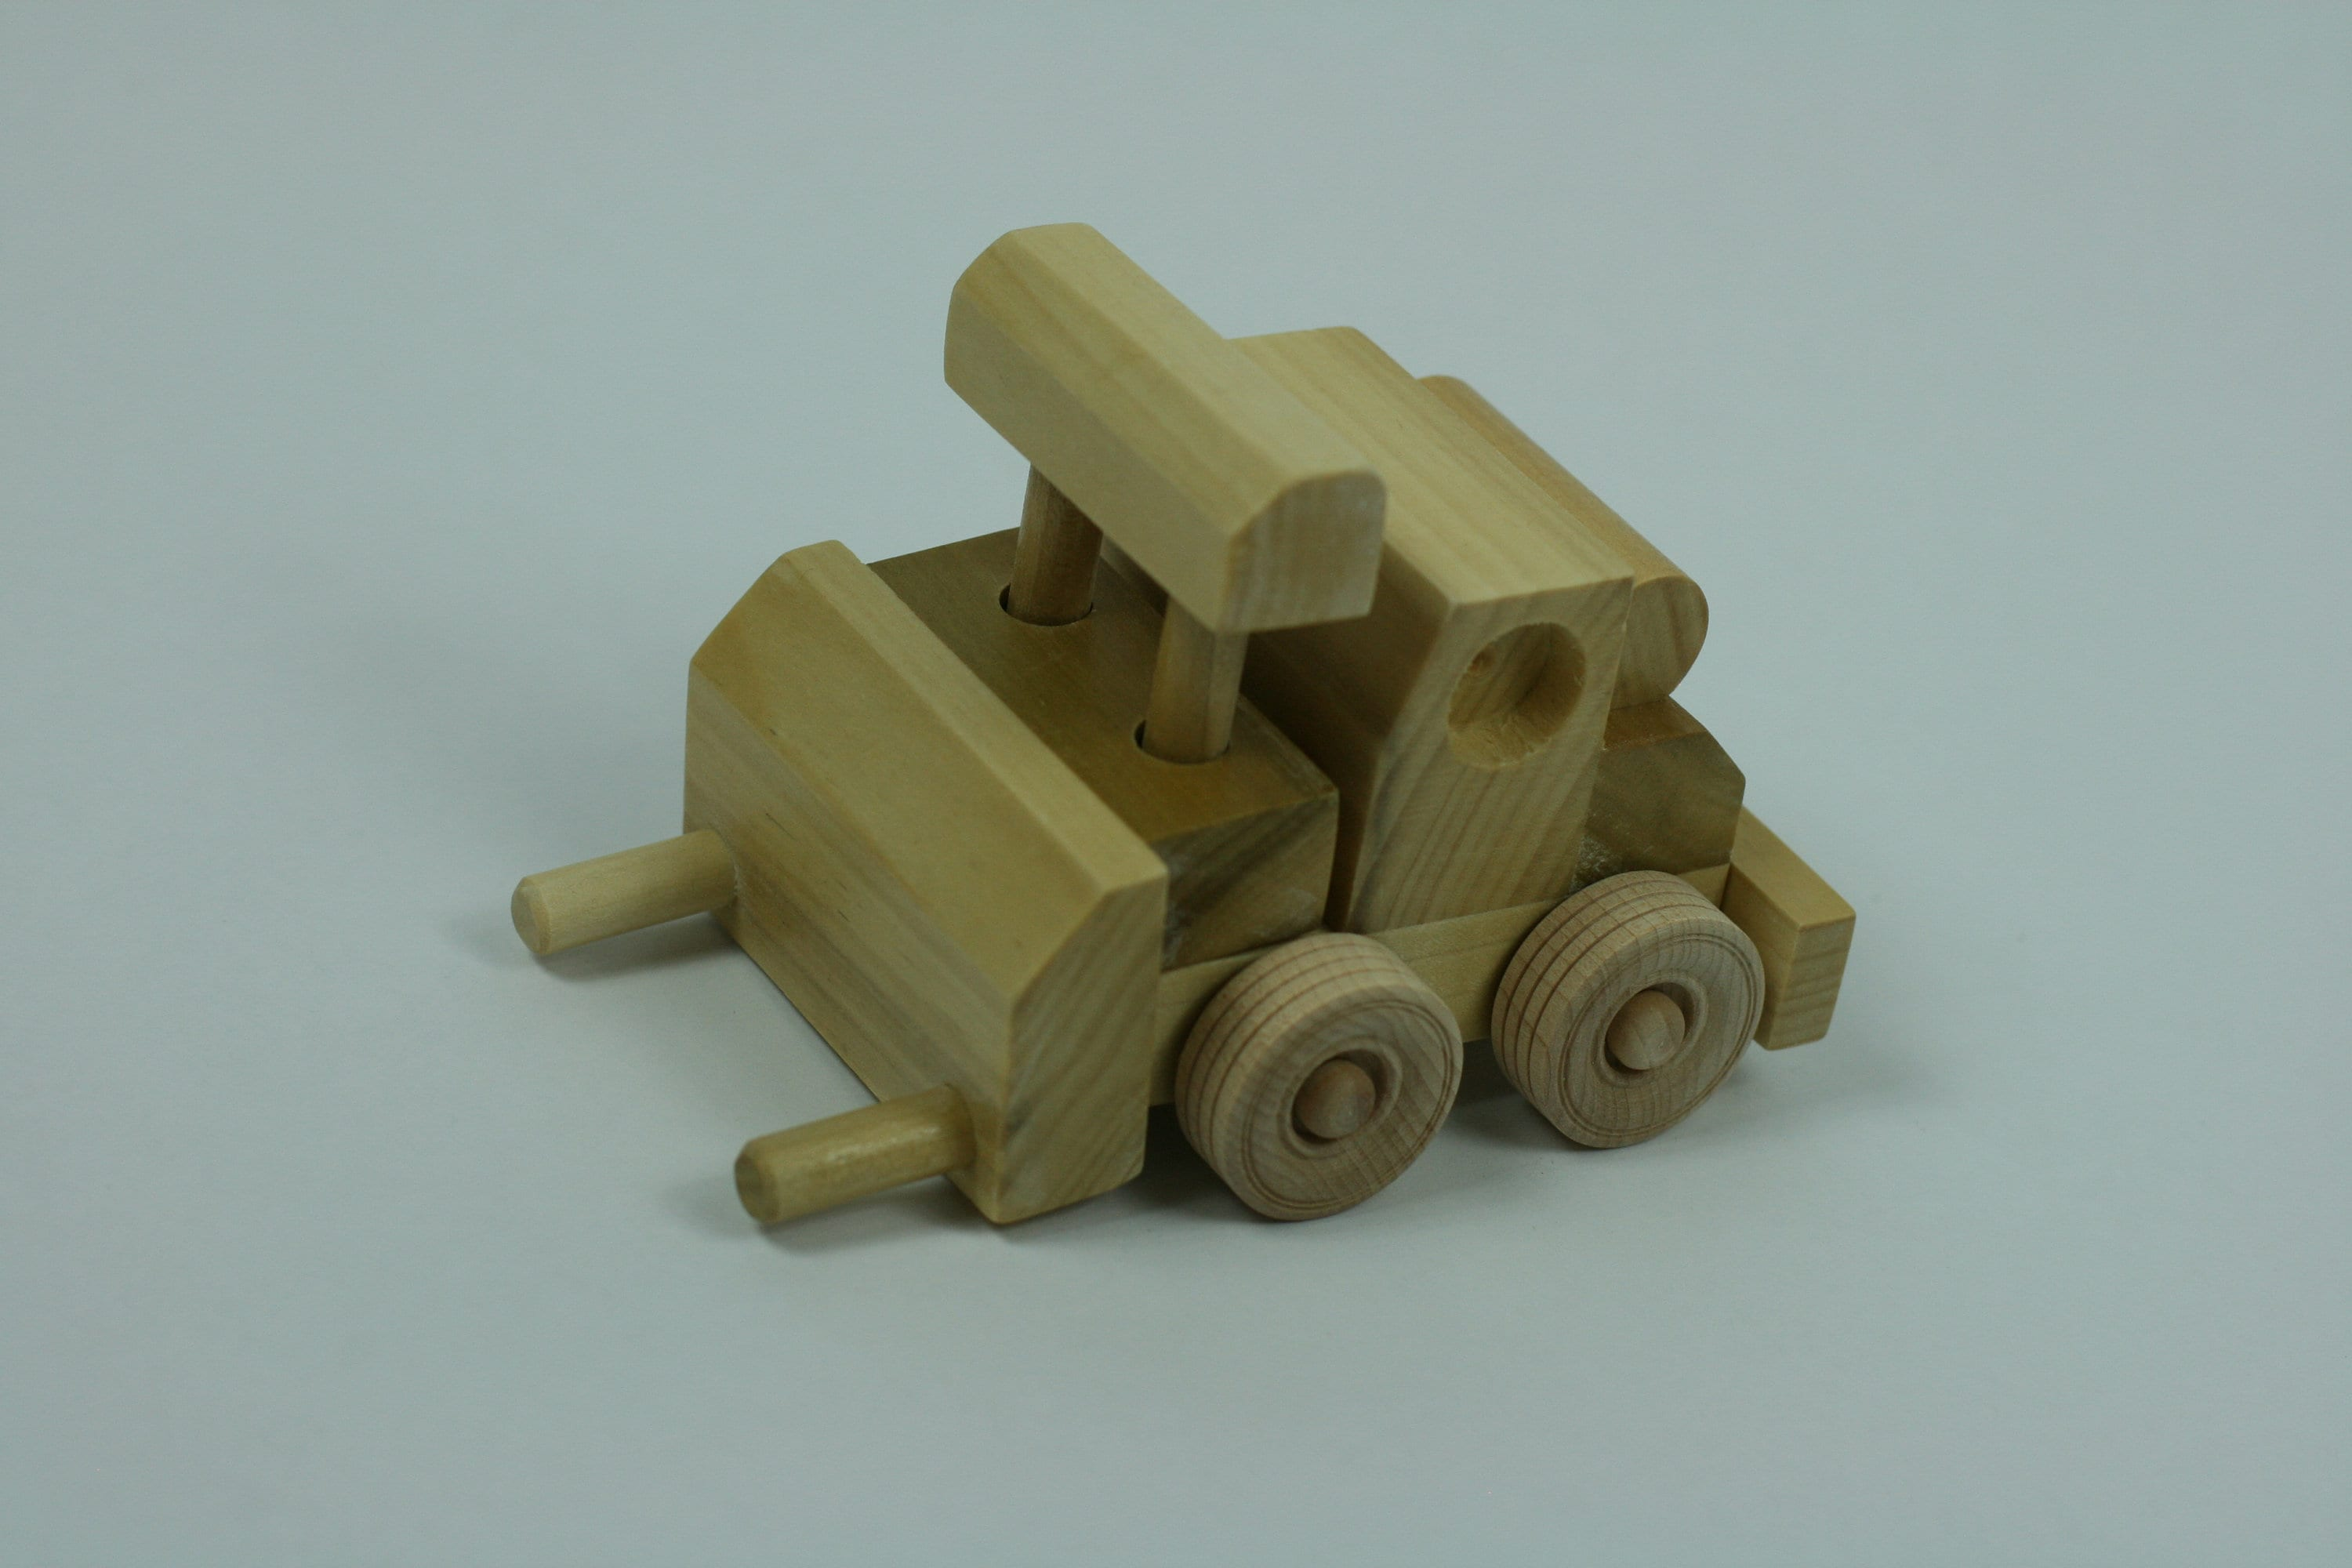 wood toy plan - small vehicle: forklift